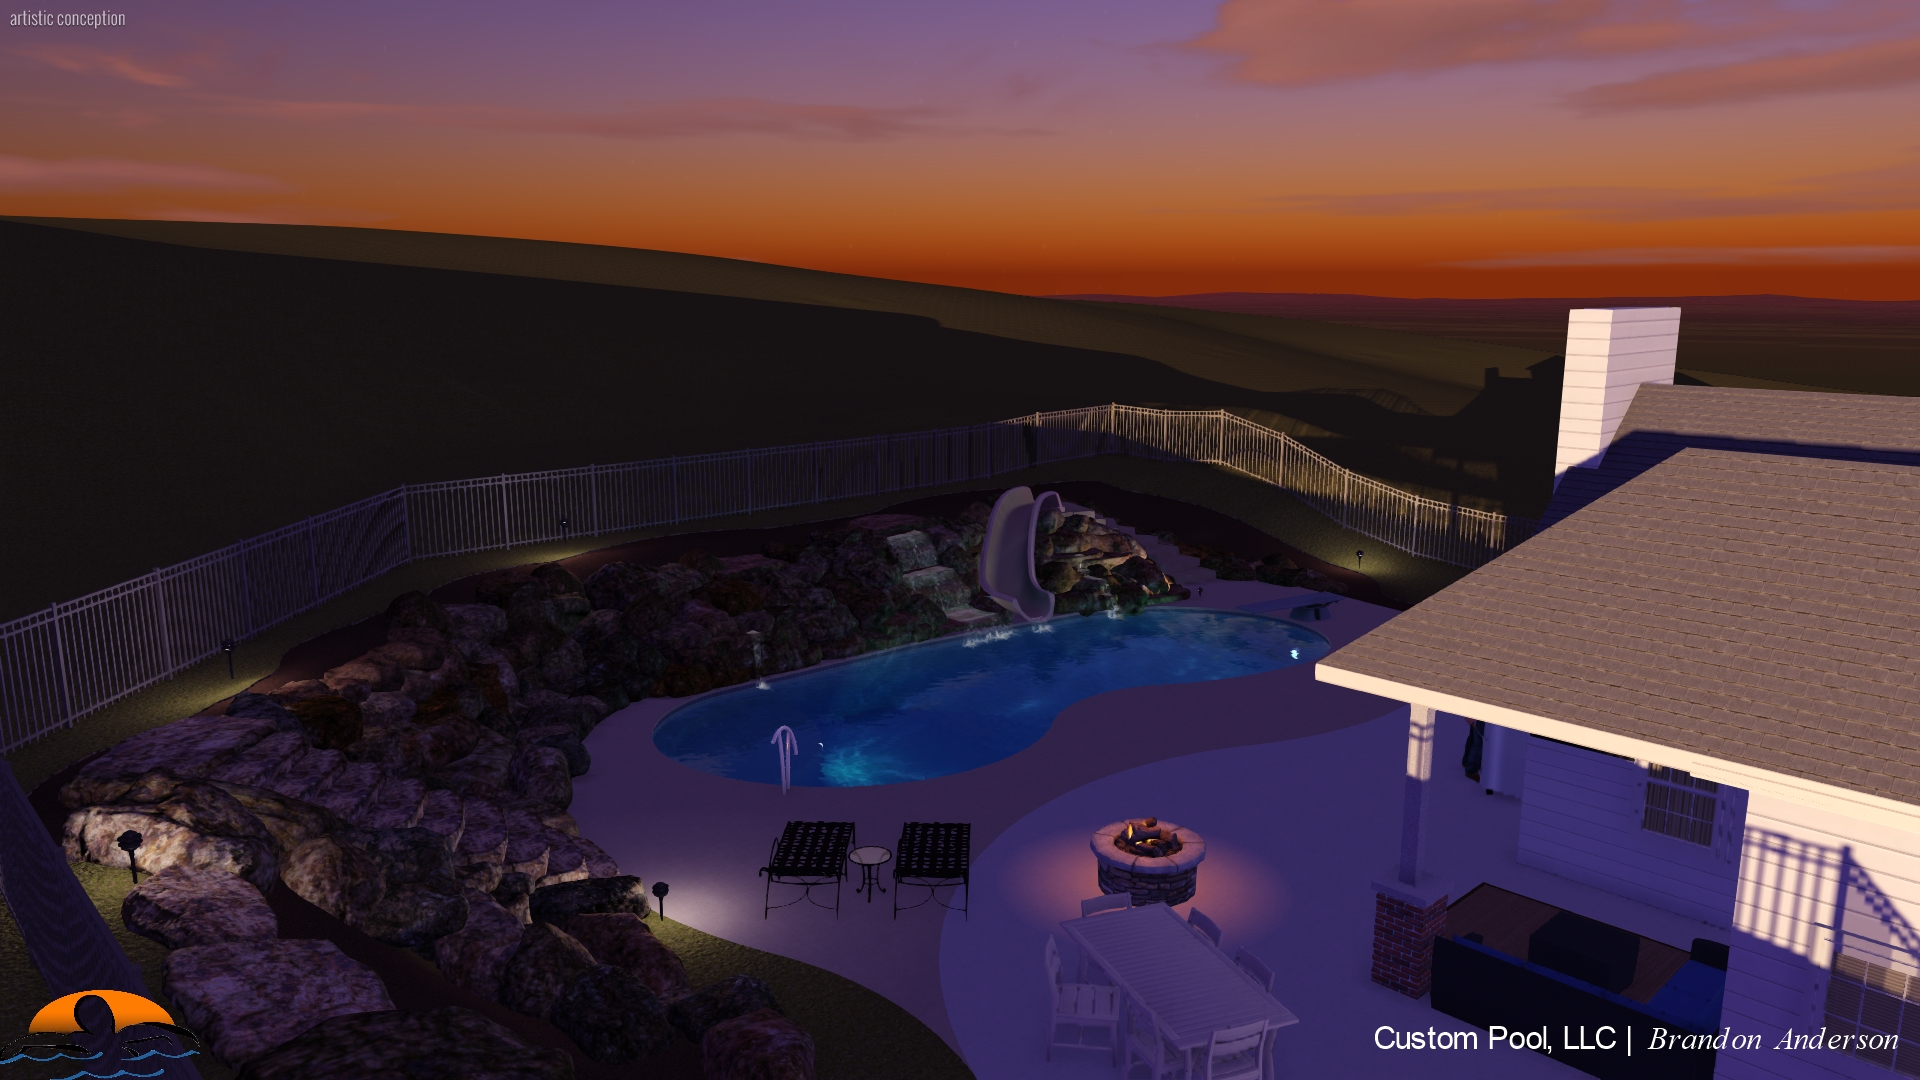 New Pool Rendering